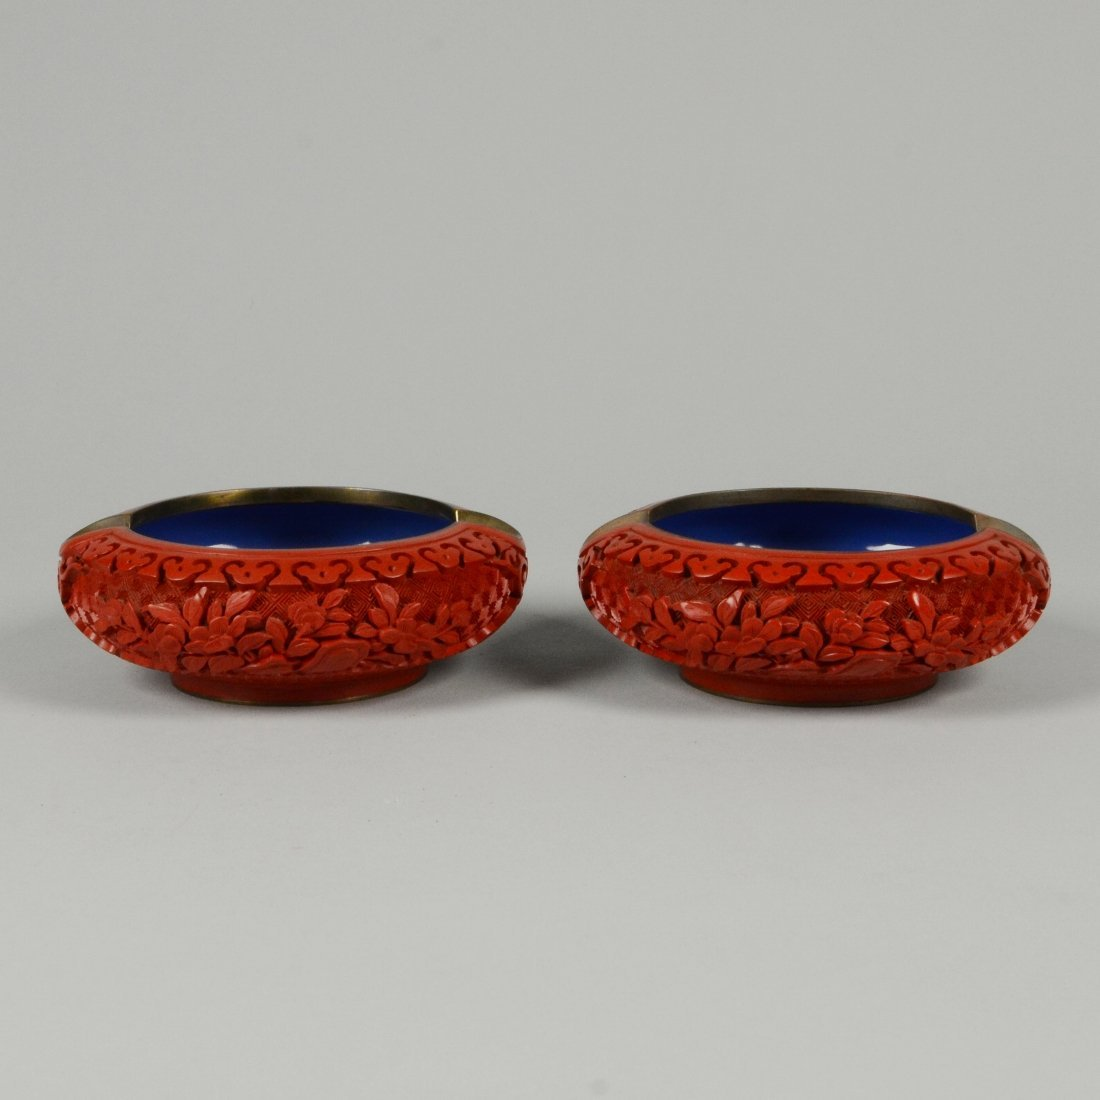 10: PAIR OF CARVED CINNABAR LACQUER ASHTRAYS